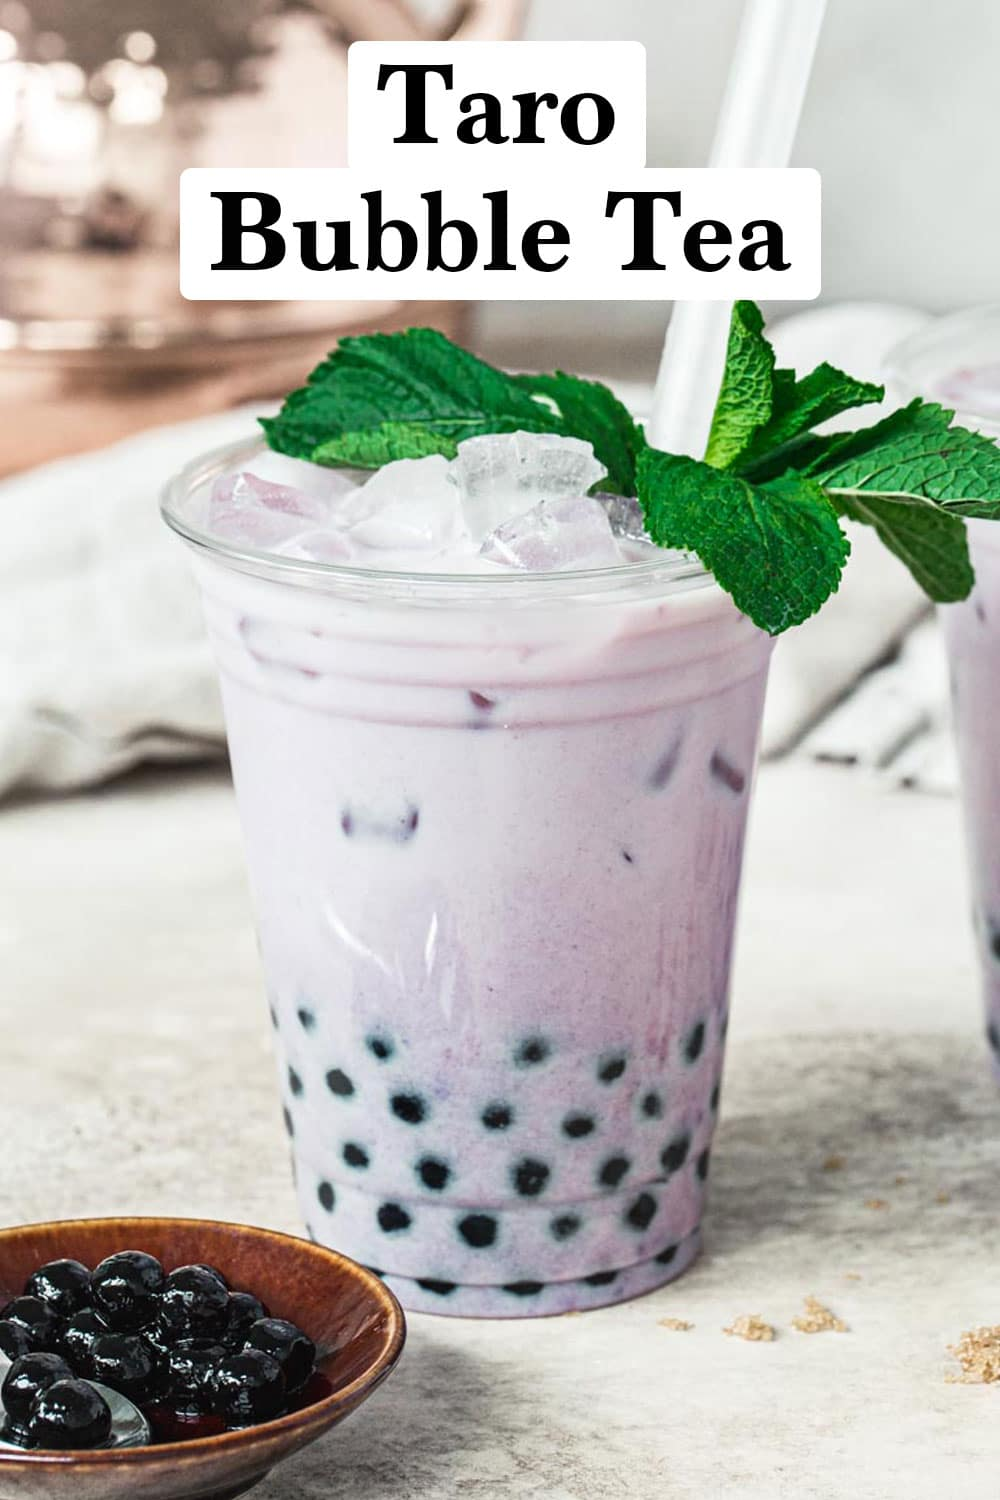 Taro bubble tea in a plastic cup topped with mint leaves and with black and white title.